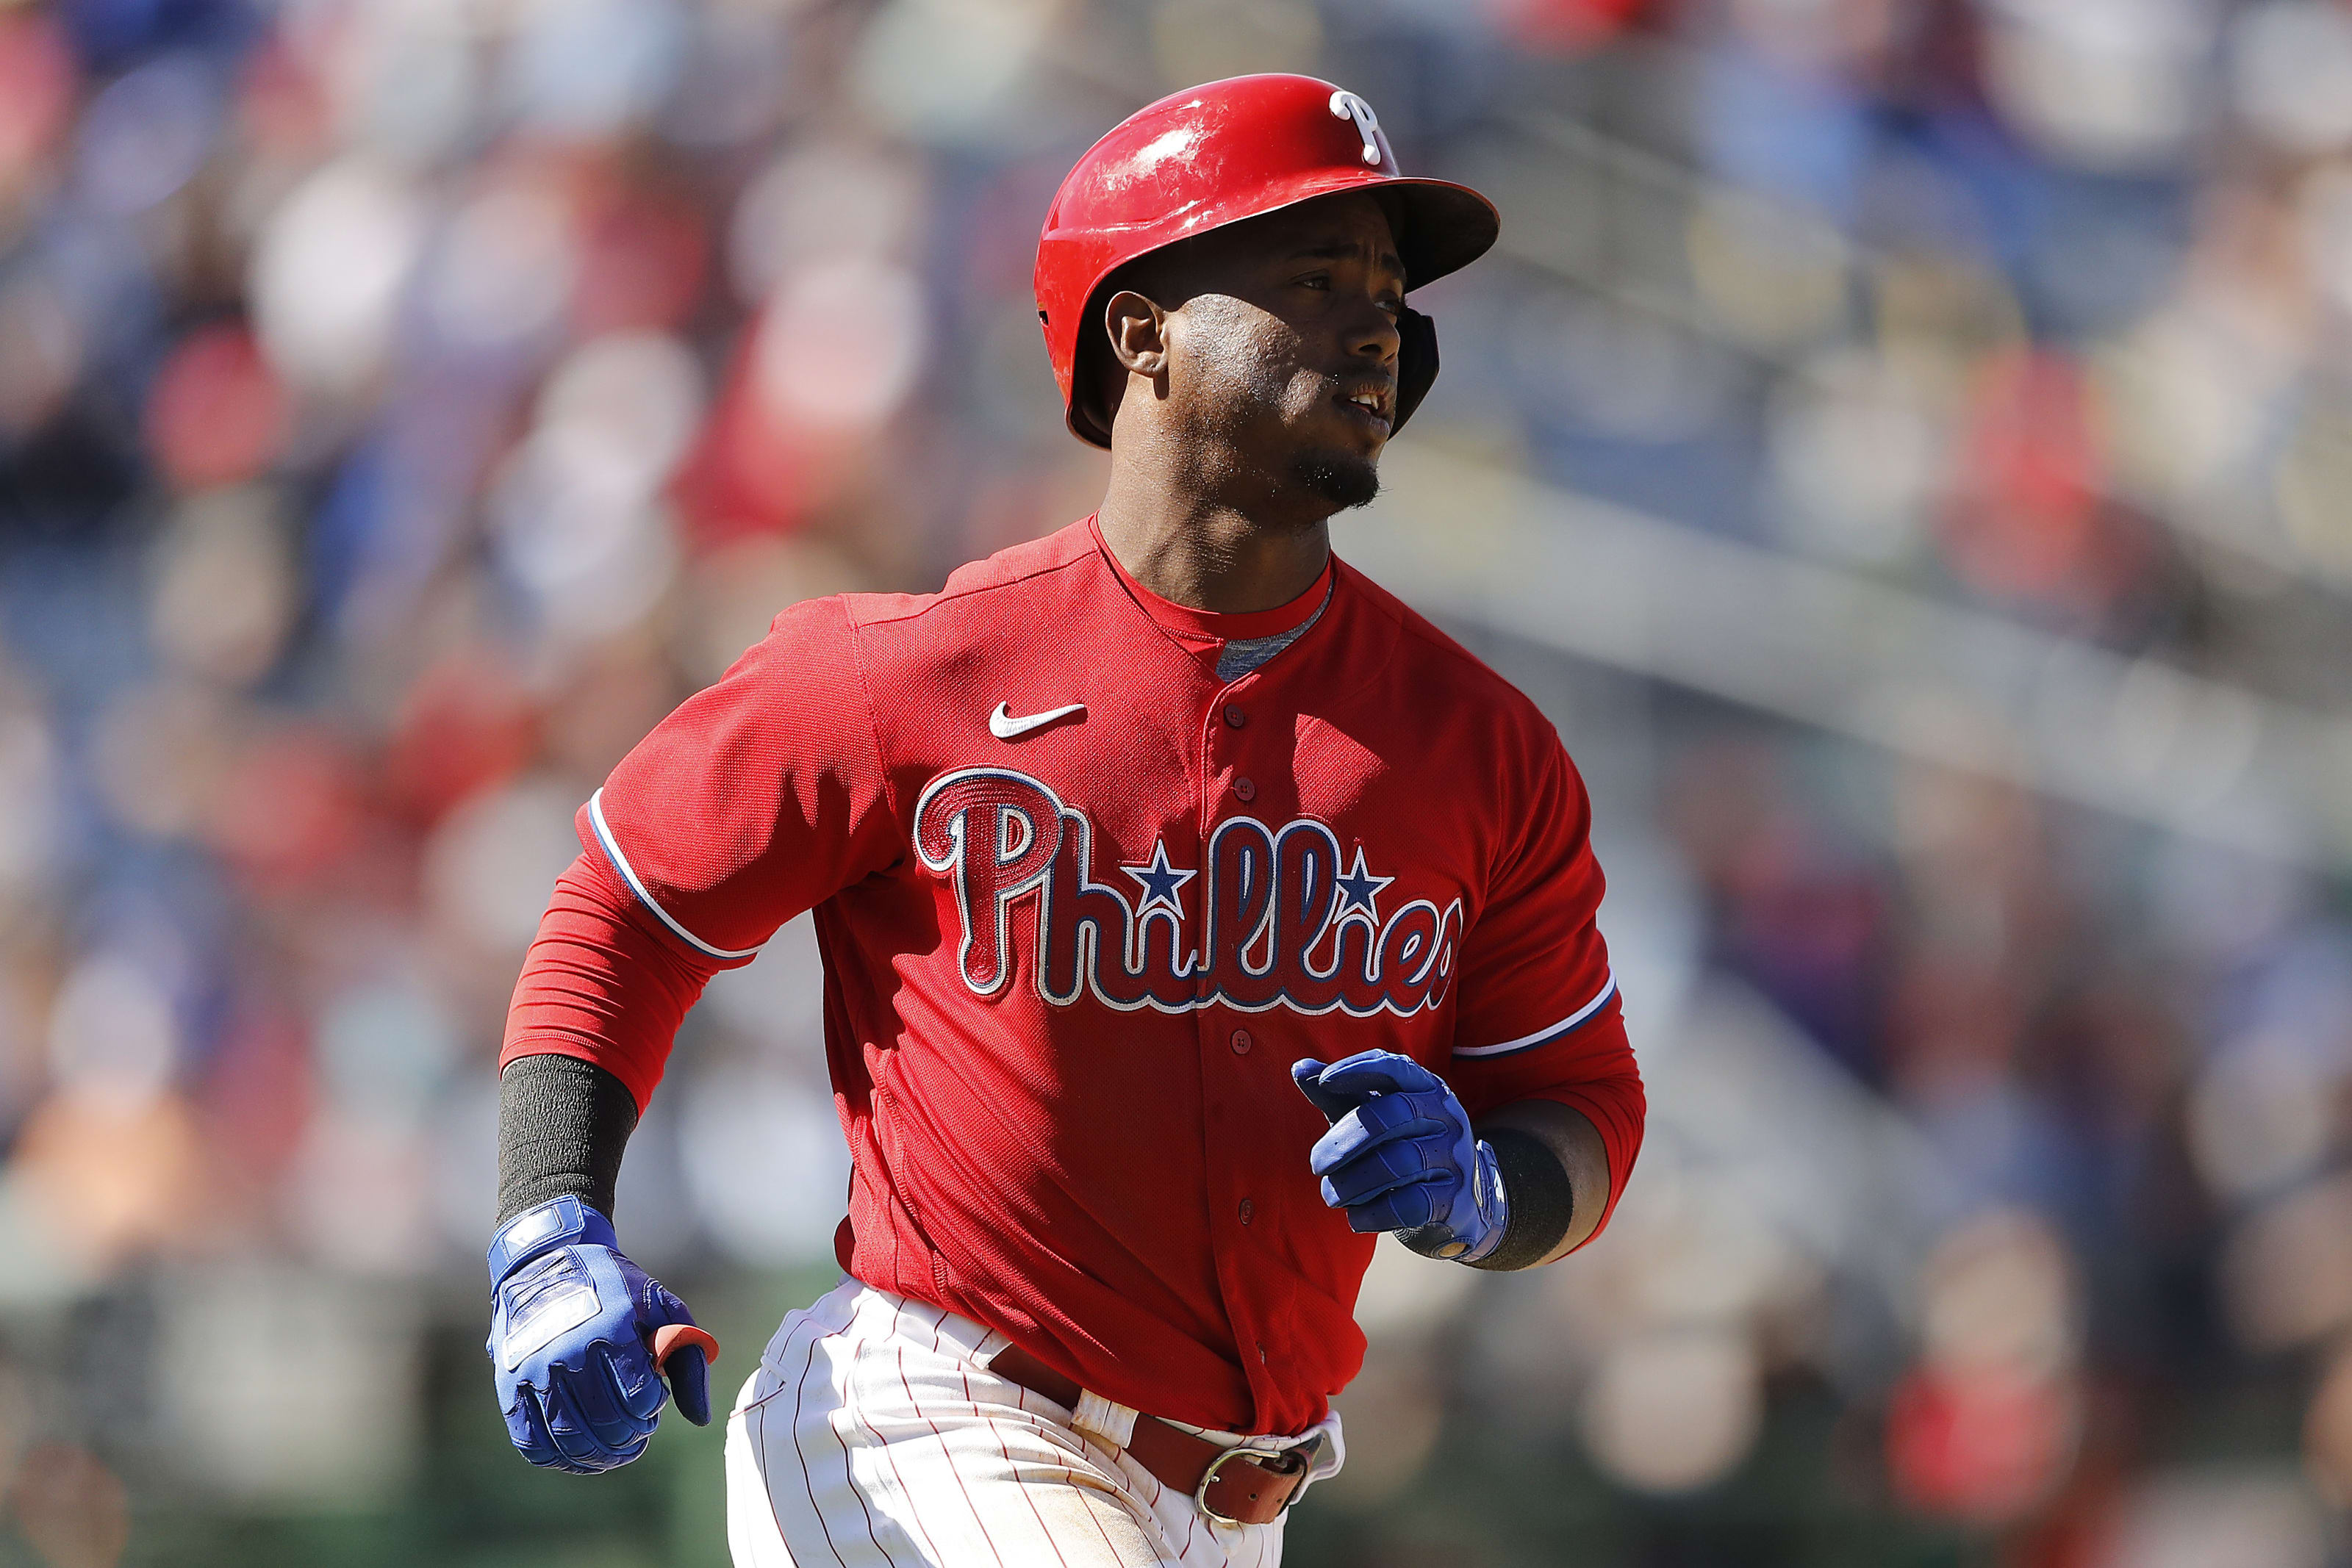 Phillies: Projected 2020 Starting Lineup, Nos. 4-6 Spots - Page 3